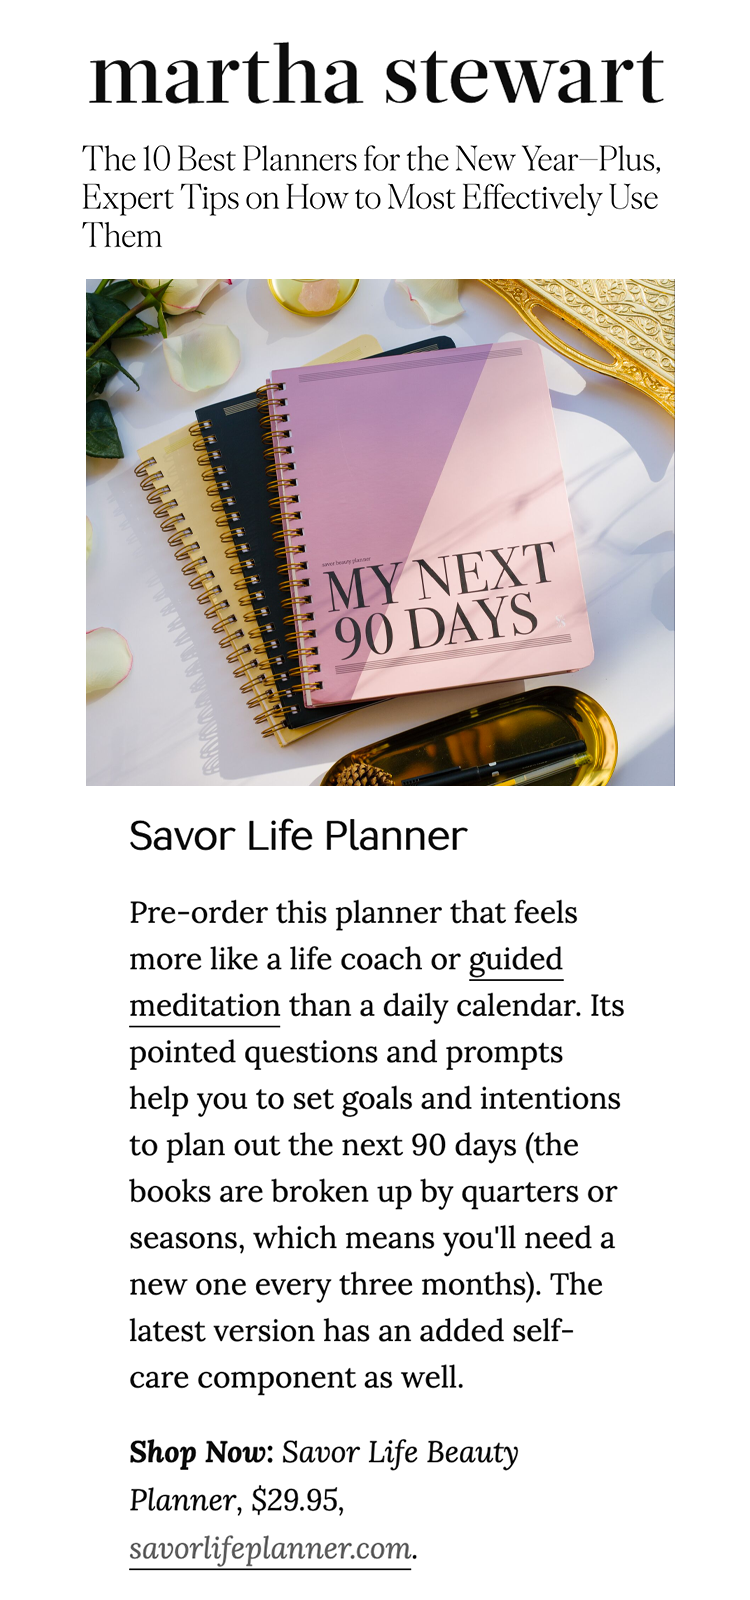 Martha Stewart: The 10 Best Planners for the New Year—Plus, Expert Tips on How to Most Effectively Use Them